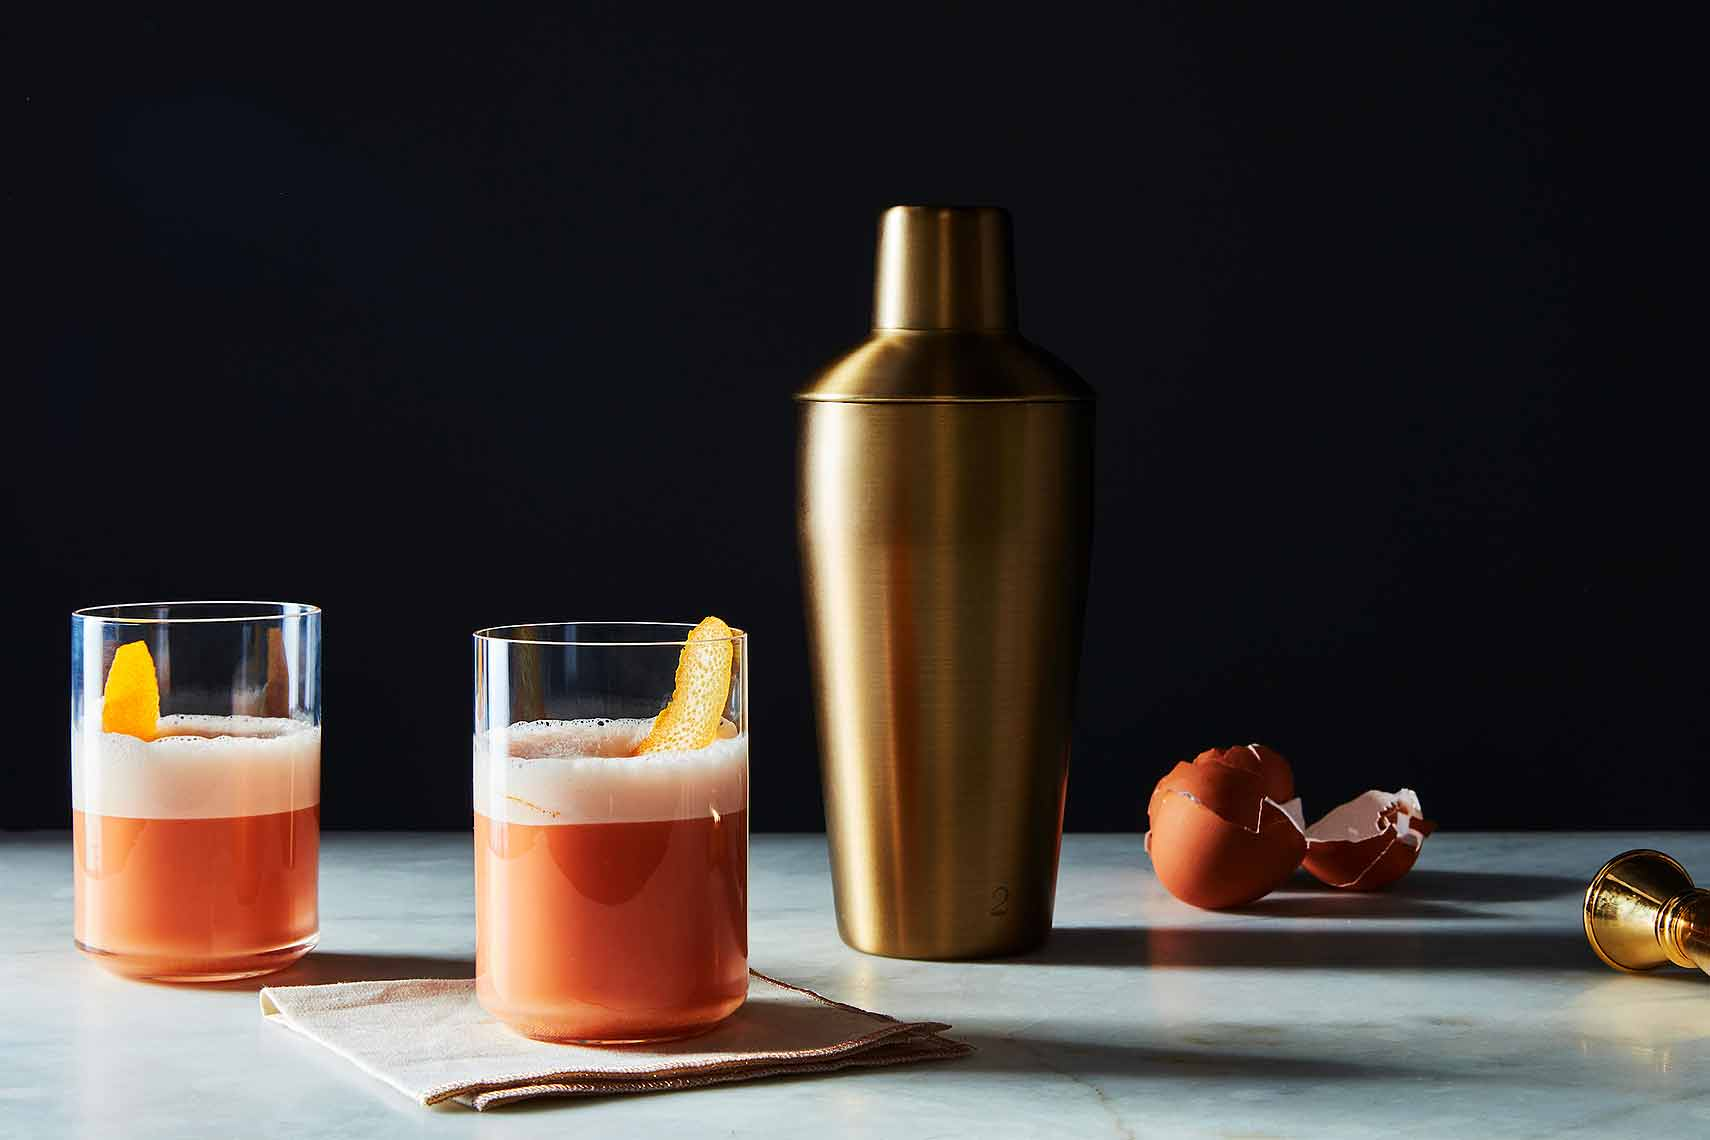 2016-1128_izola_matte-gold-cocktail-shaker_email_james-ransom-136